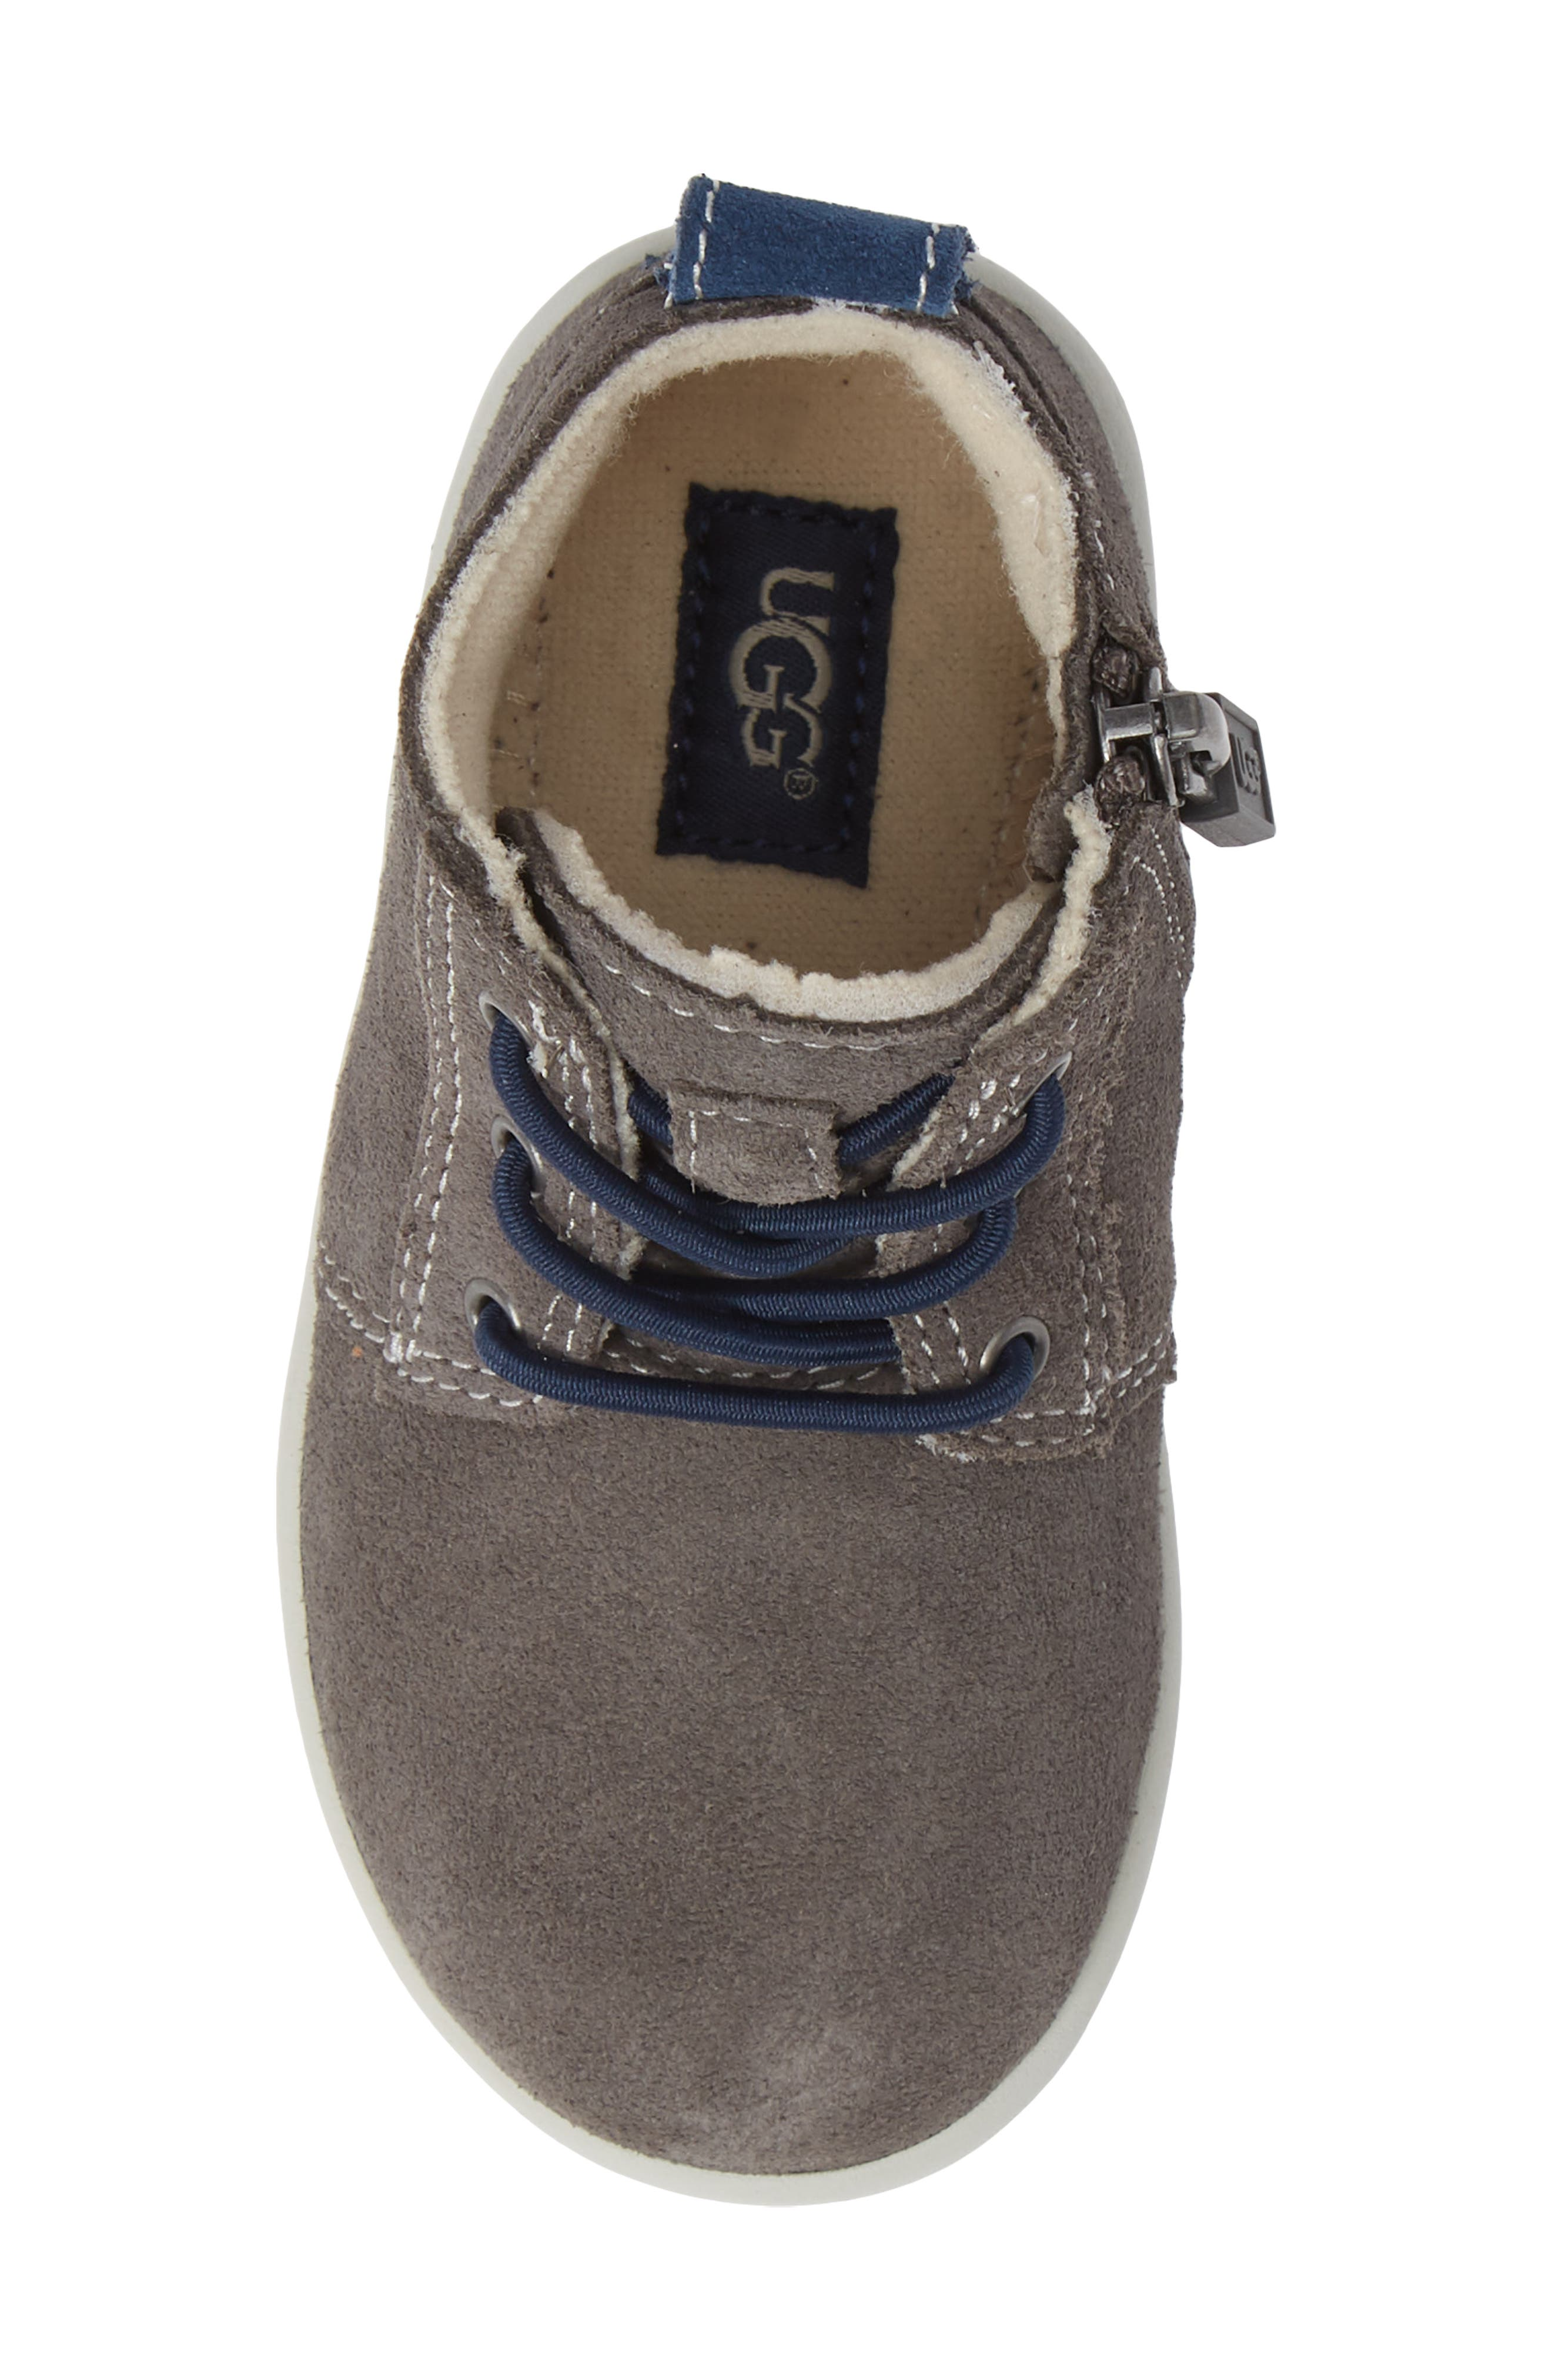 Kristjan Chukka Sneaker,                             Alternate thumbnail 5, color,                             CHARCOAL GREY